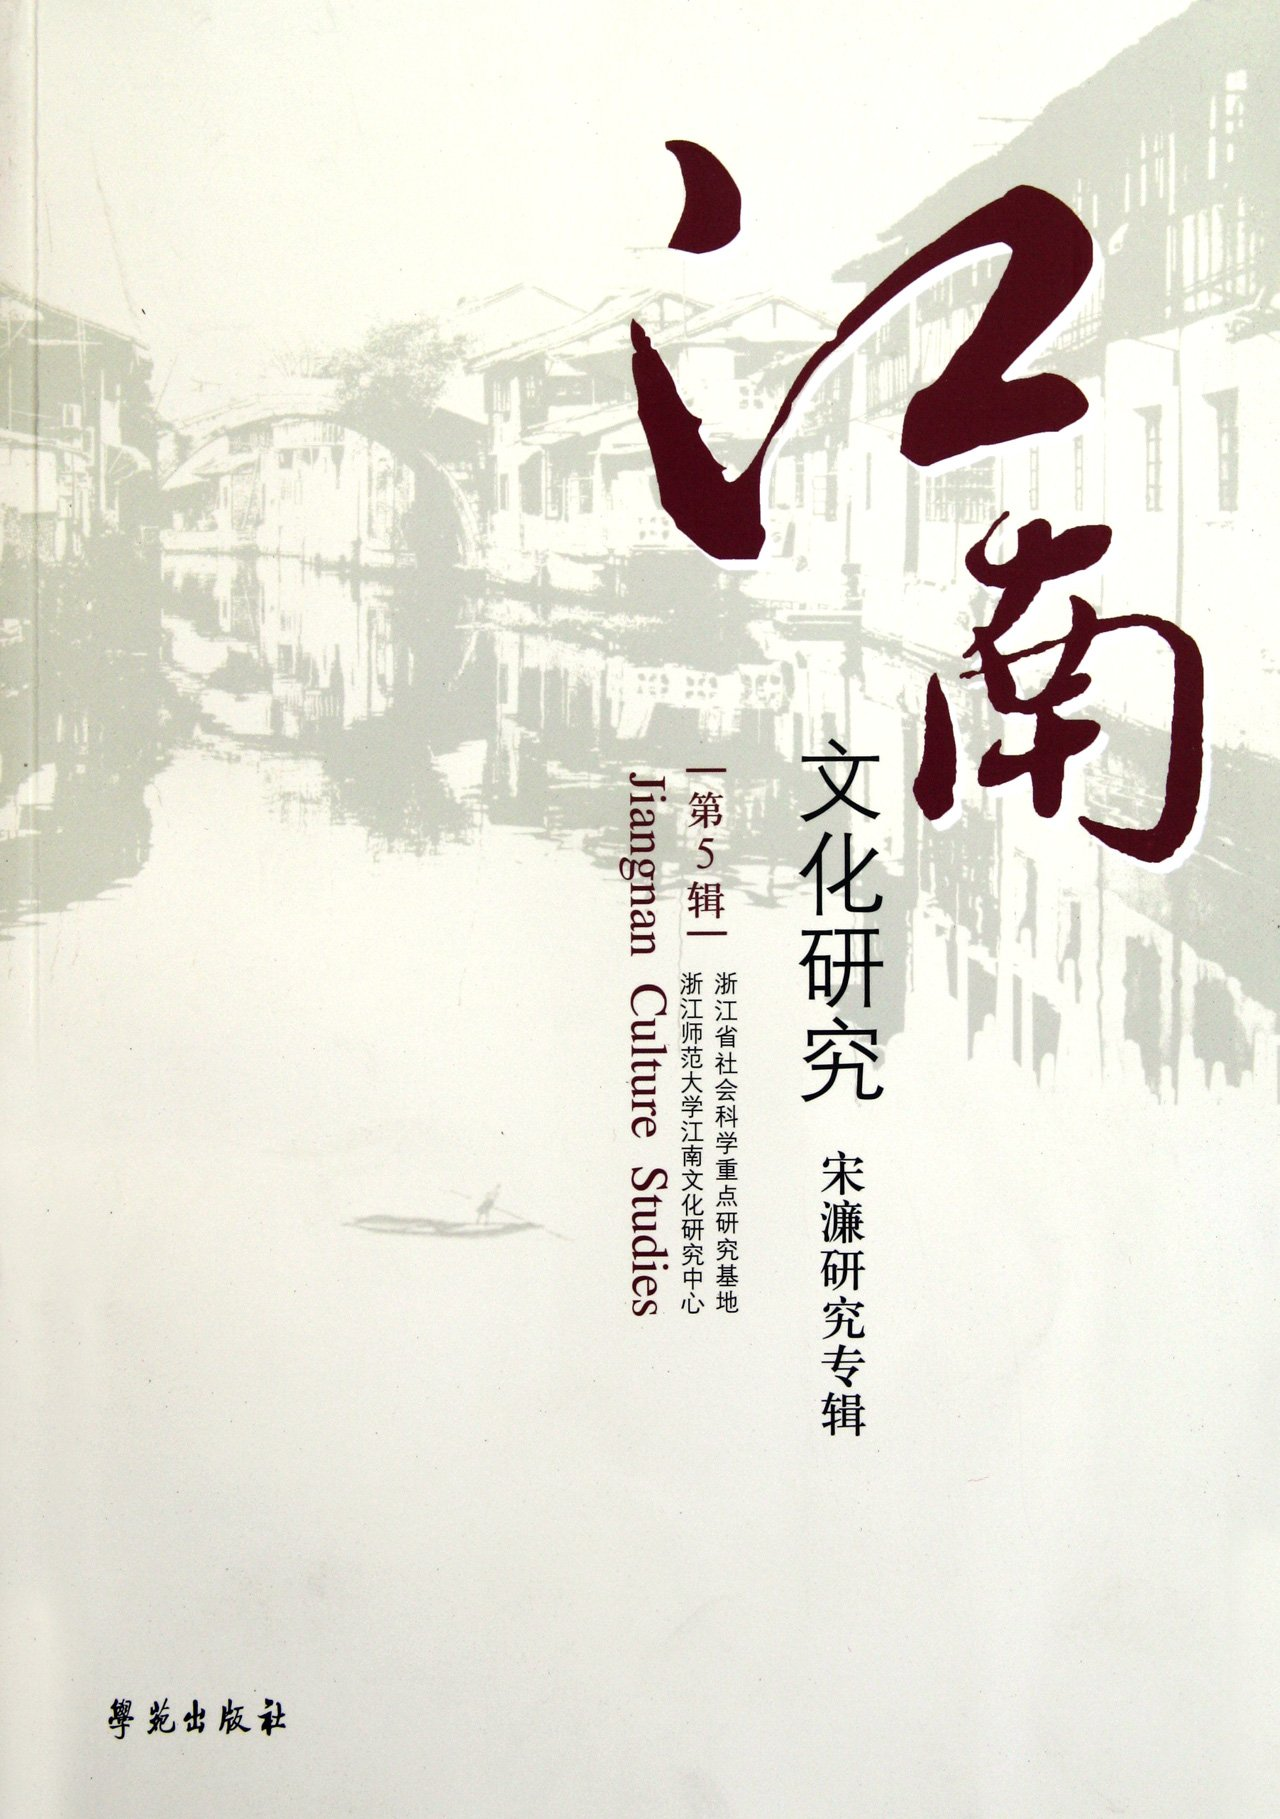 Download Jiangnan Culture. 5 Series: Song Lian Research Album (Chinese Edition) ebook